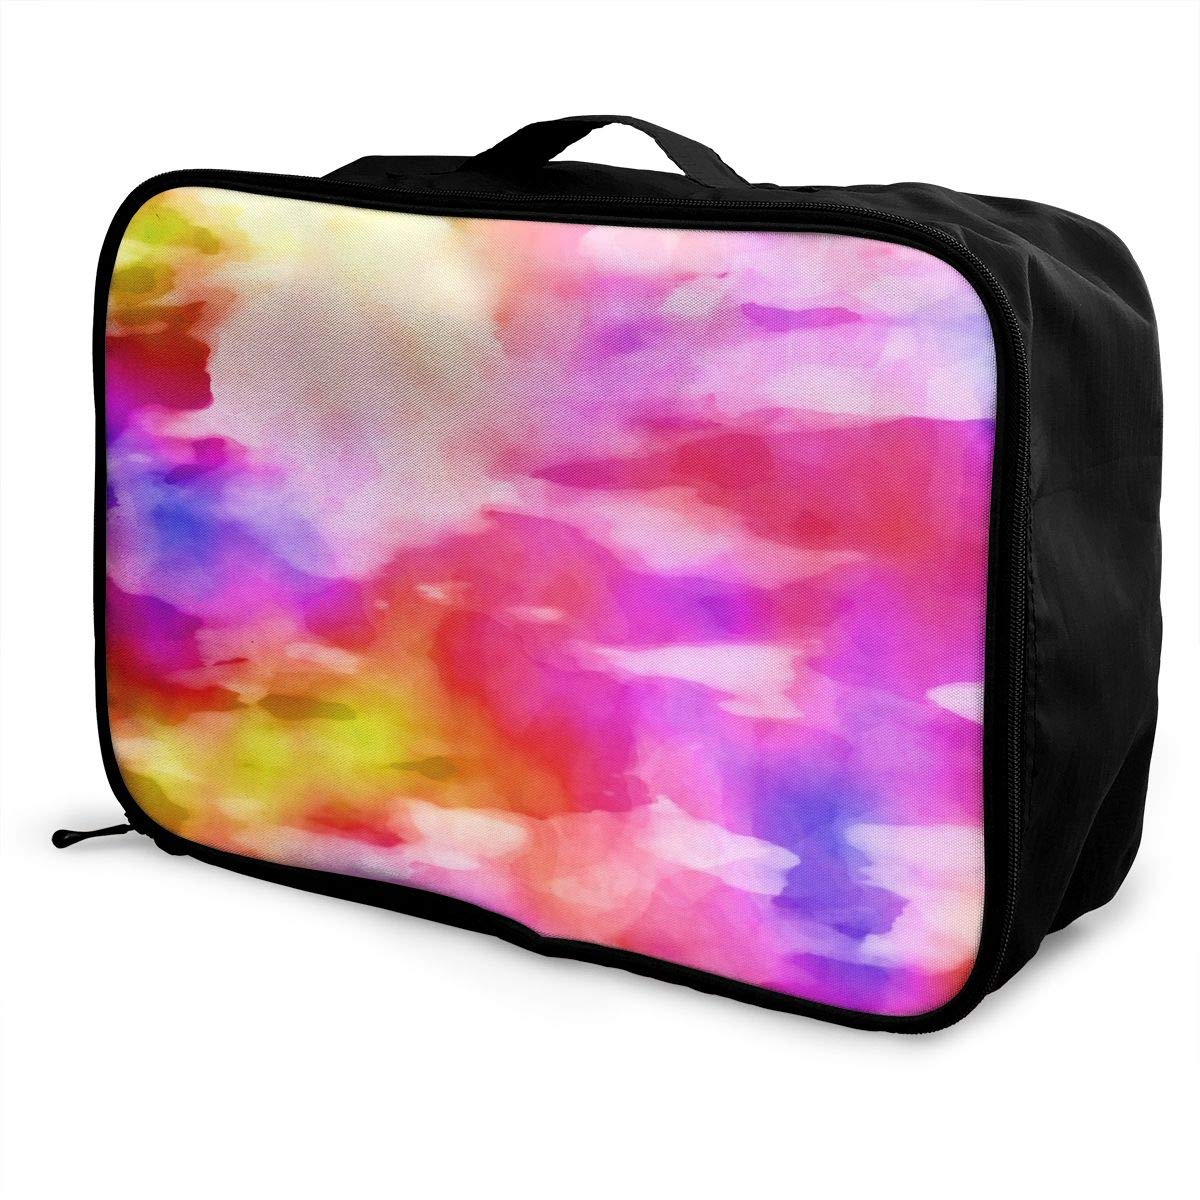 Graffiti Abstract Art Watercolor Travel Lightweight Waterproof Foldable Storage Carry Luggage Large Capacity Portable Luggage Bag Duffel Bag